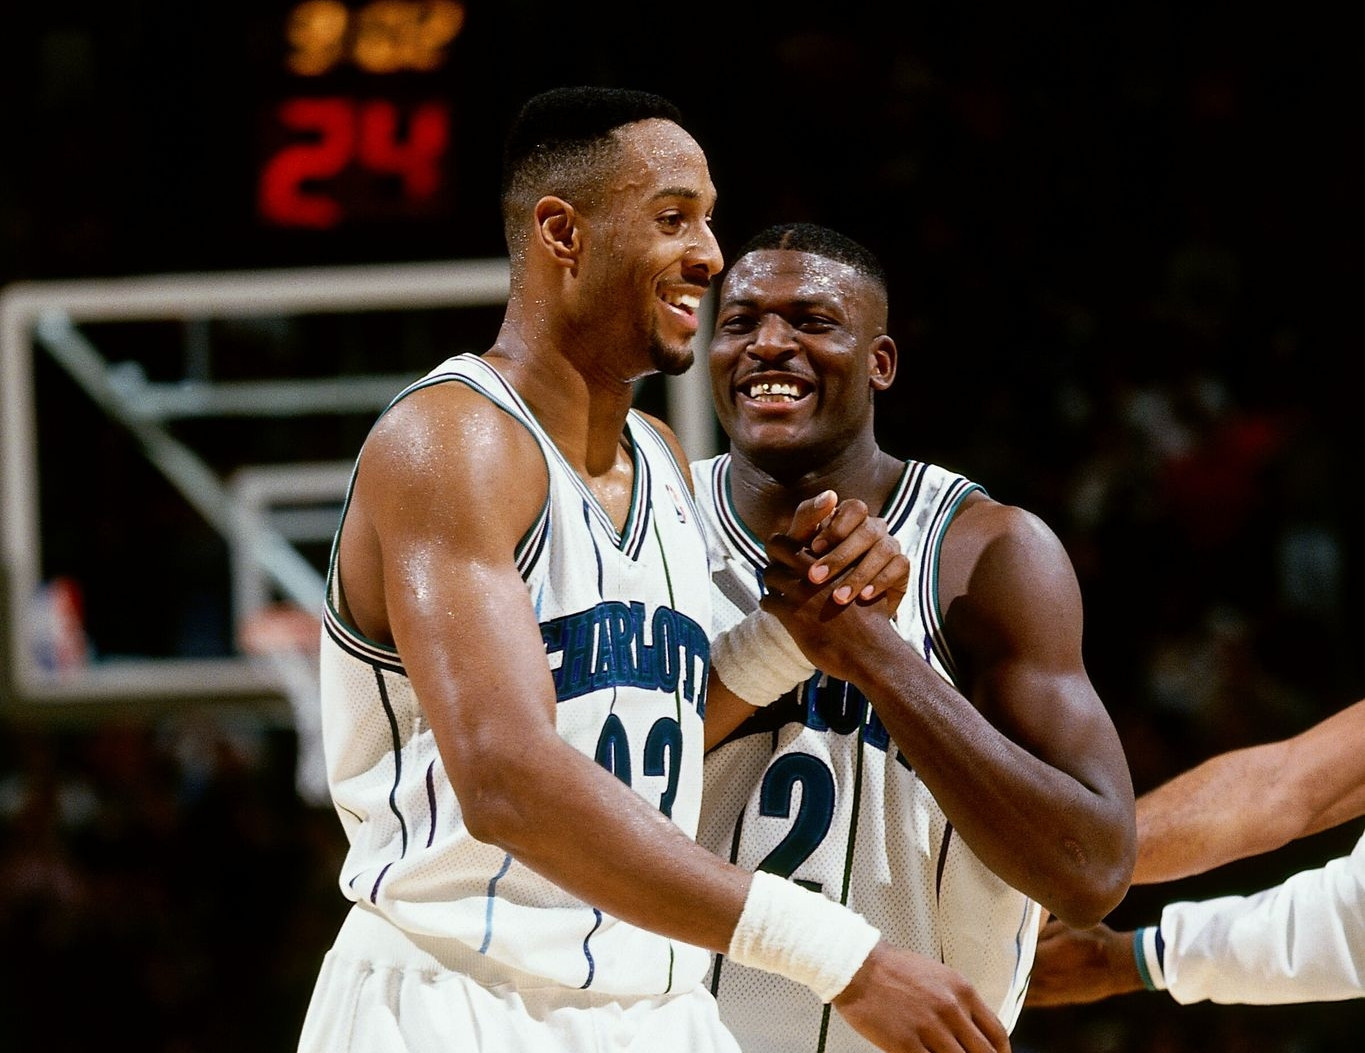 Alonzo Mourning and Larry Johnson